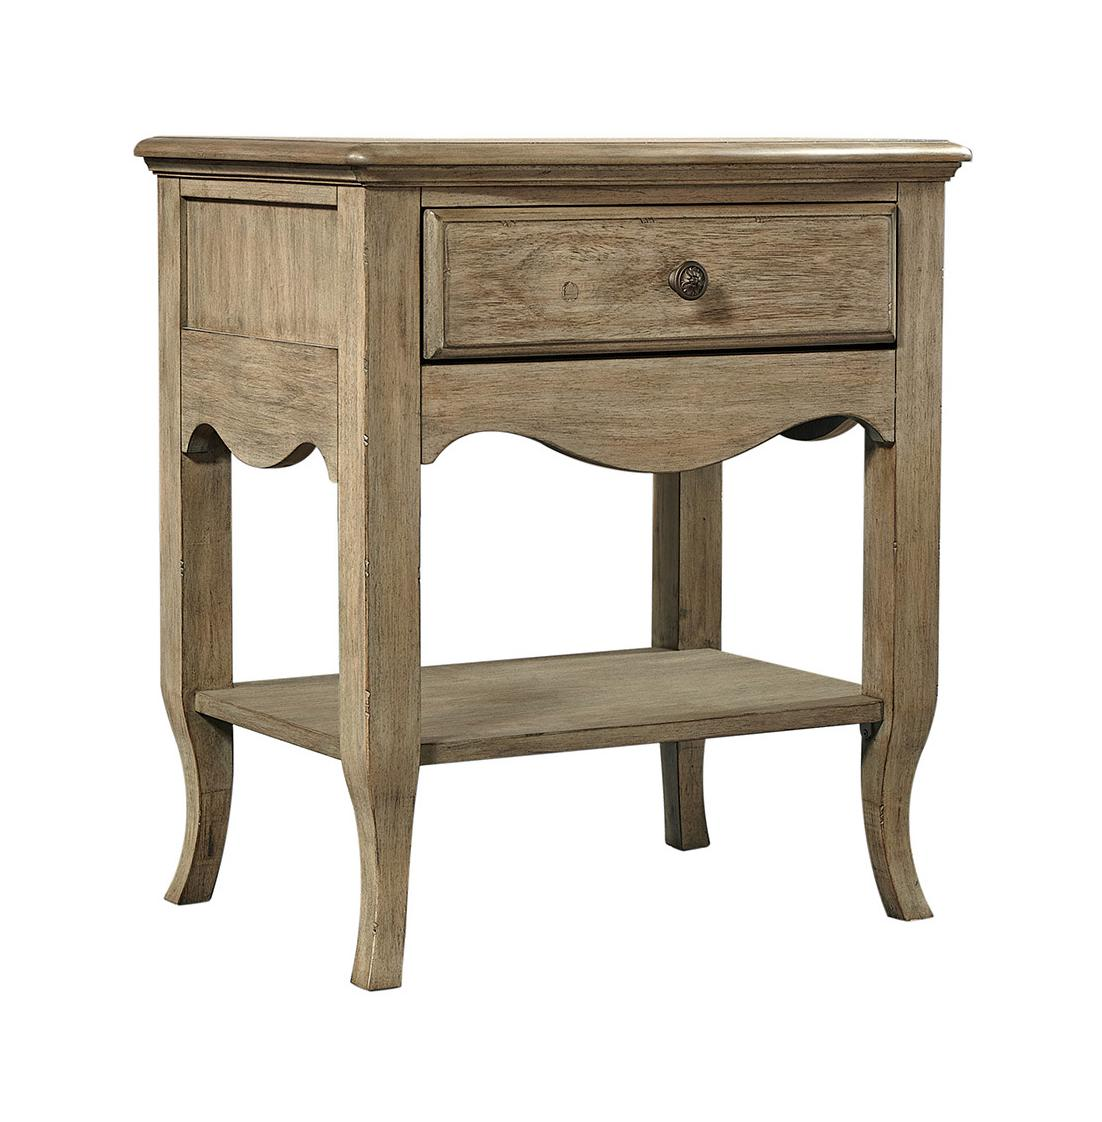 Provence 1 Drawer Nightstand in the Patine finish